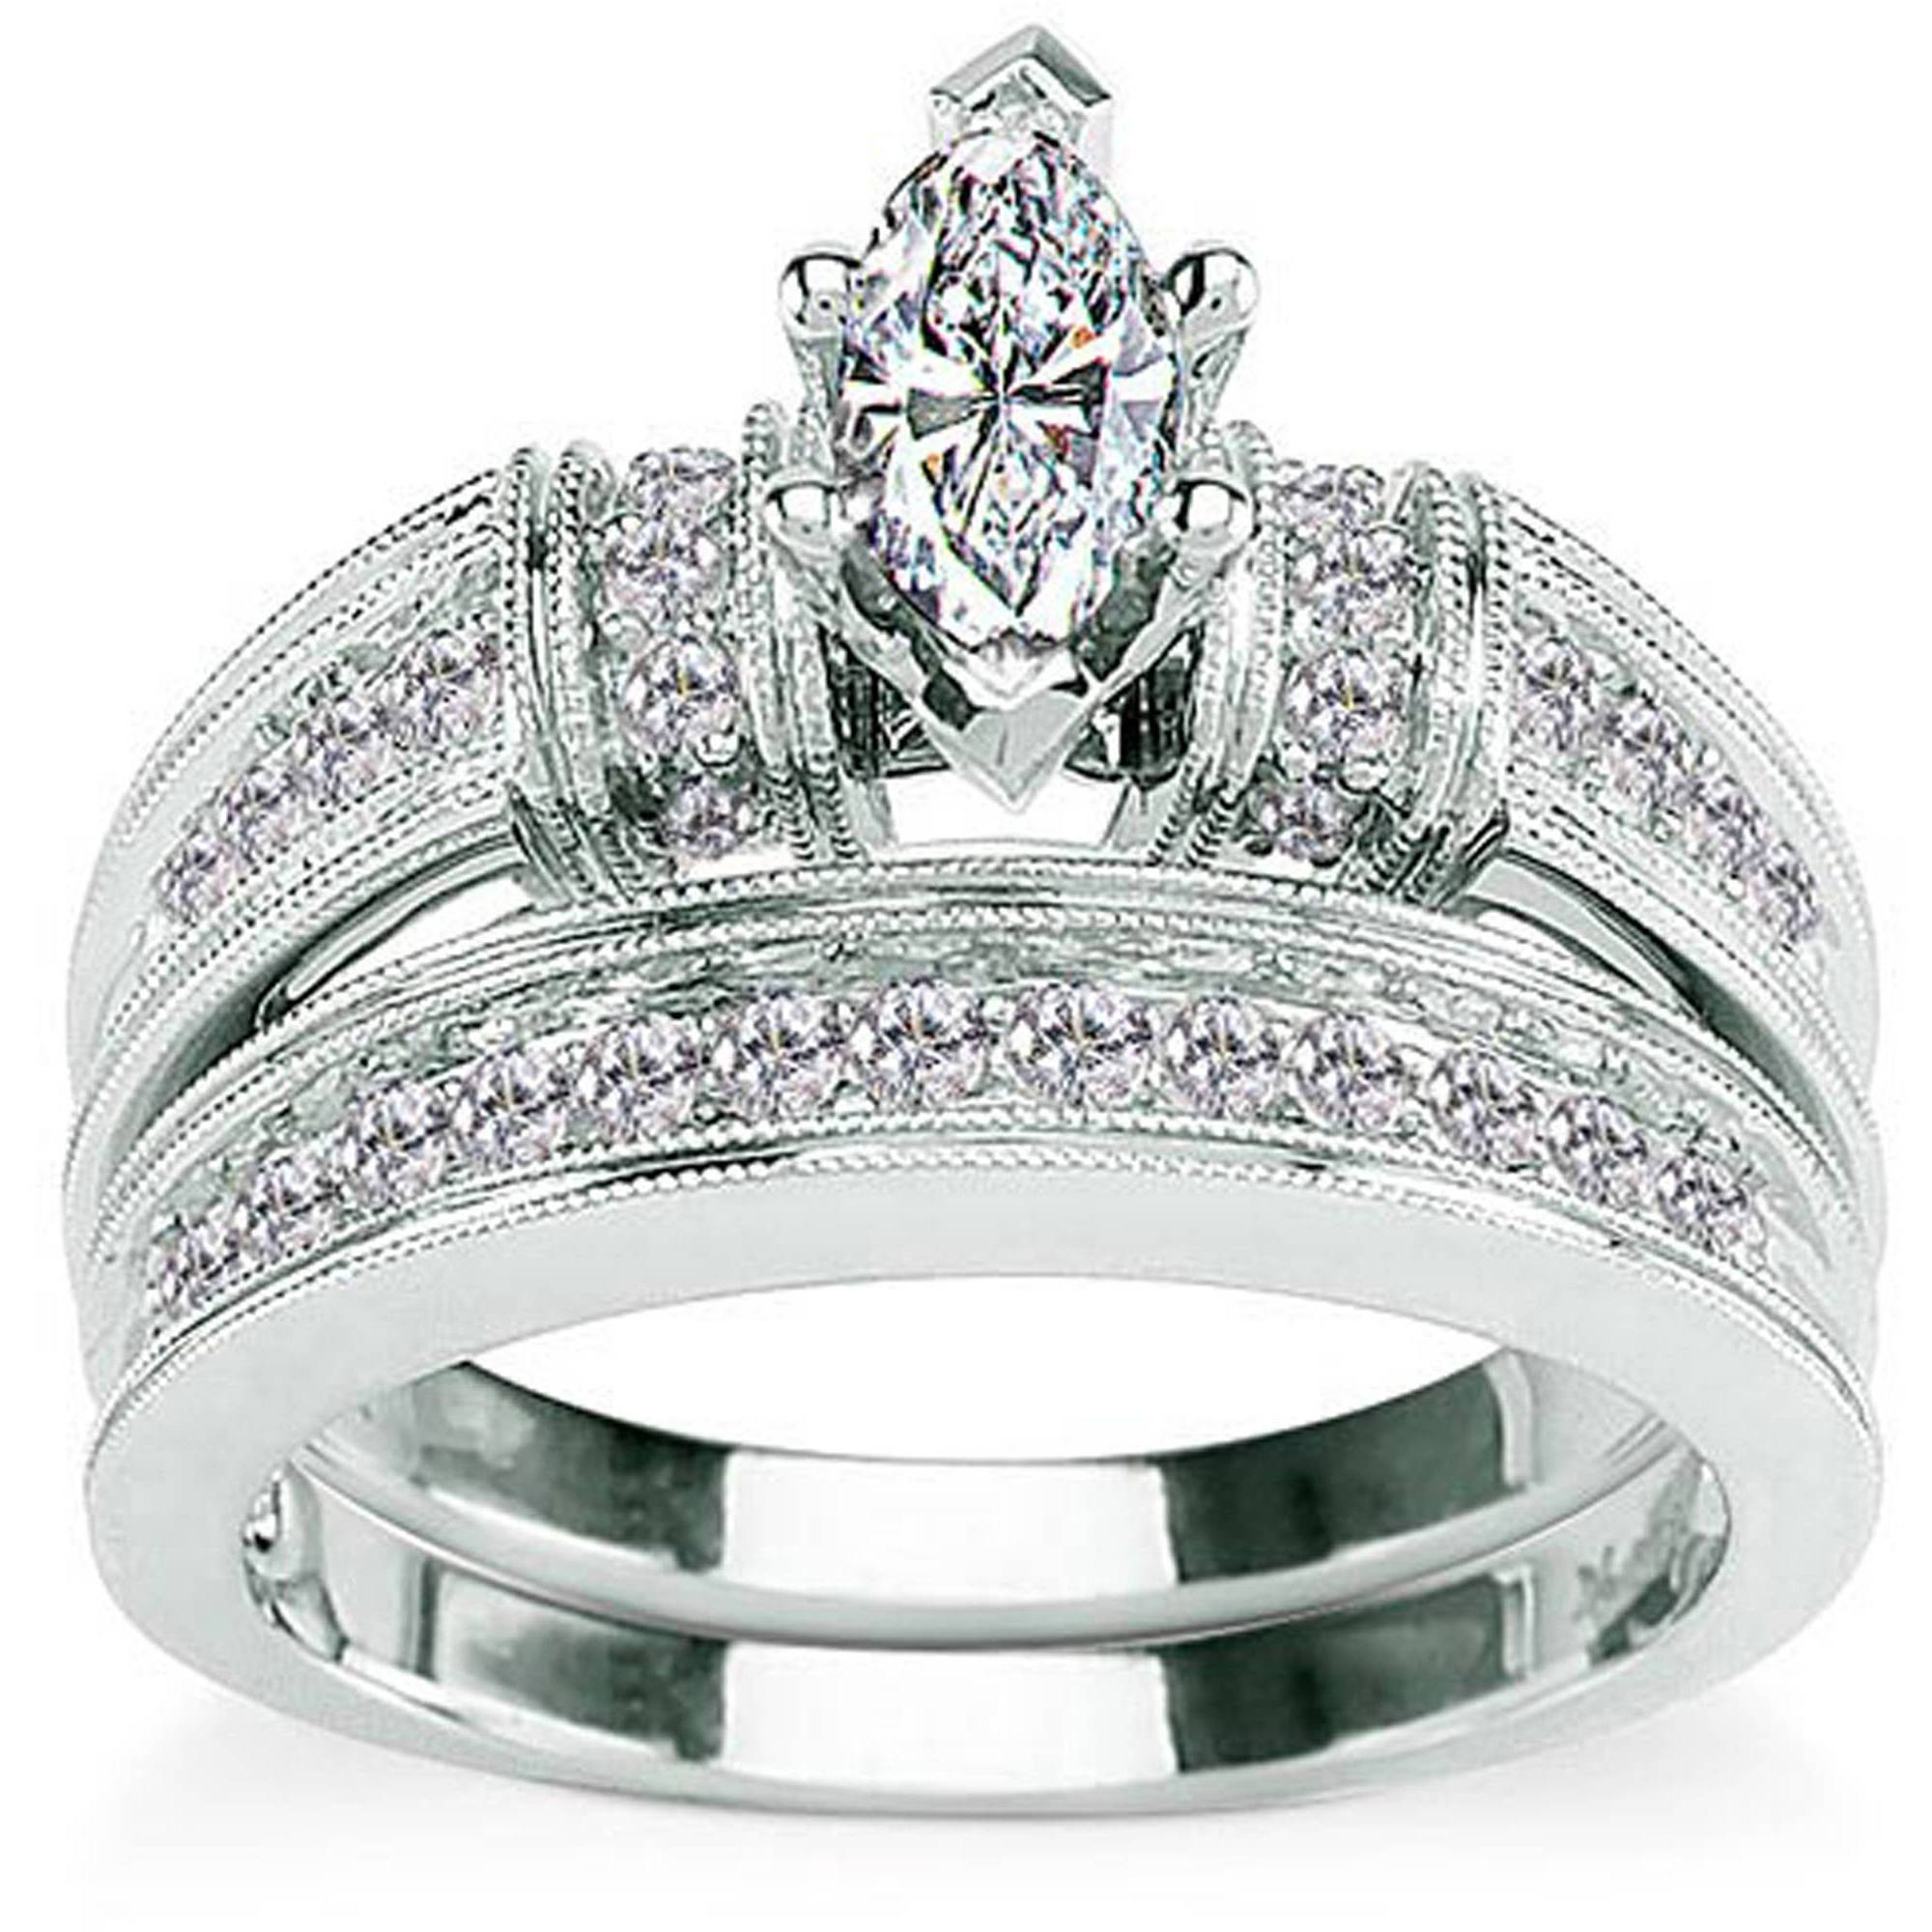 Cz 18Kt White Gold Bridal Engagement Ring – Walmart Pertaining To Walmart White Gold Engagement Rings (View 2 of 15)